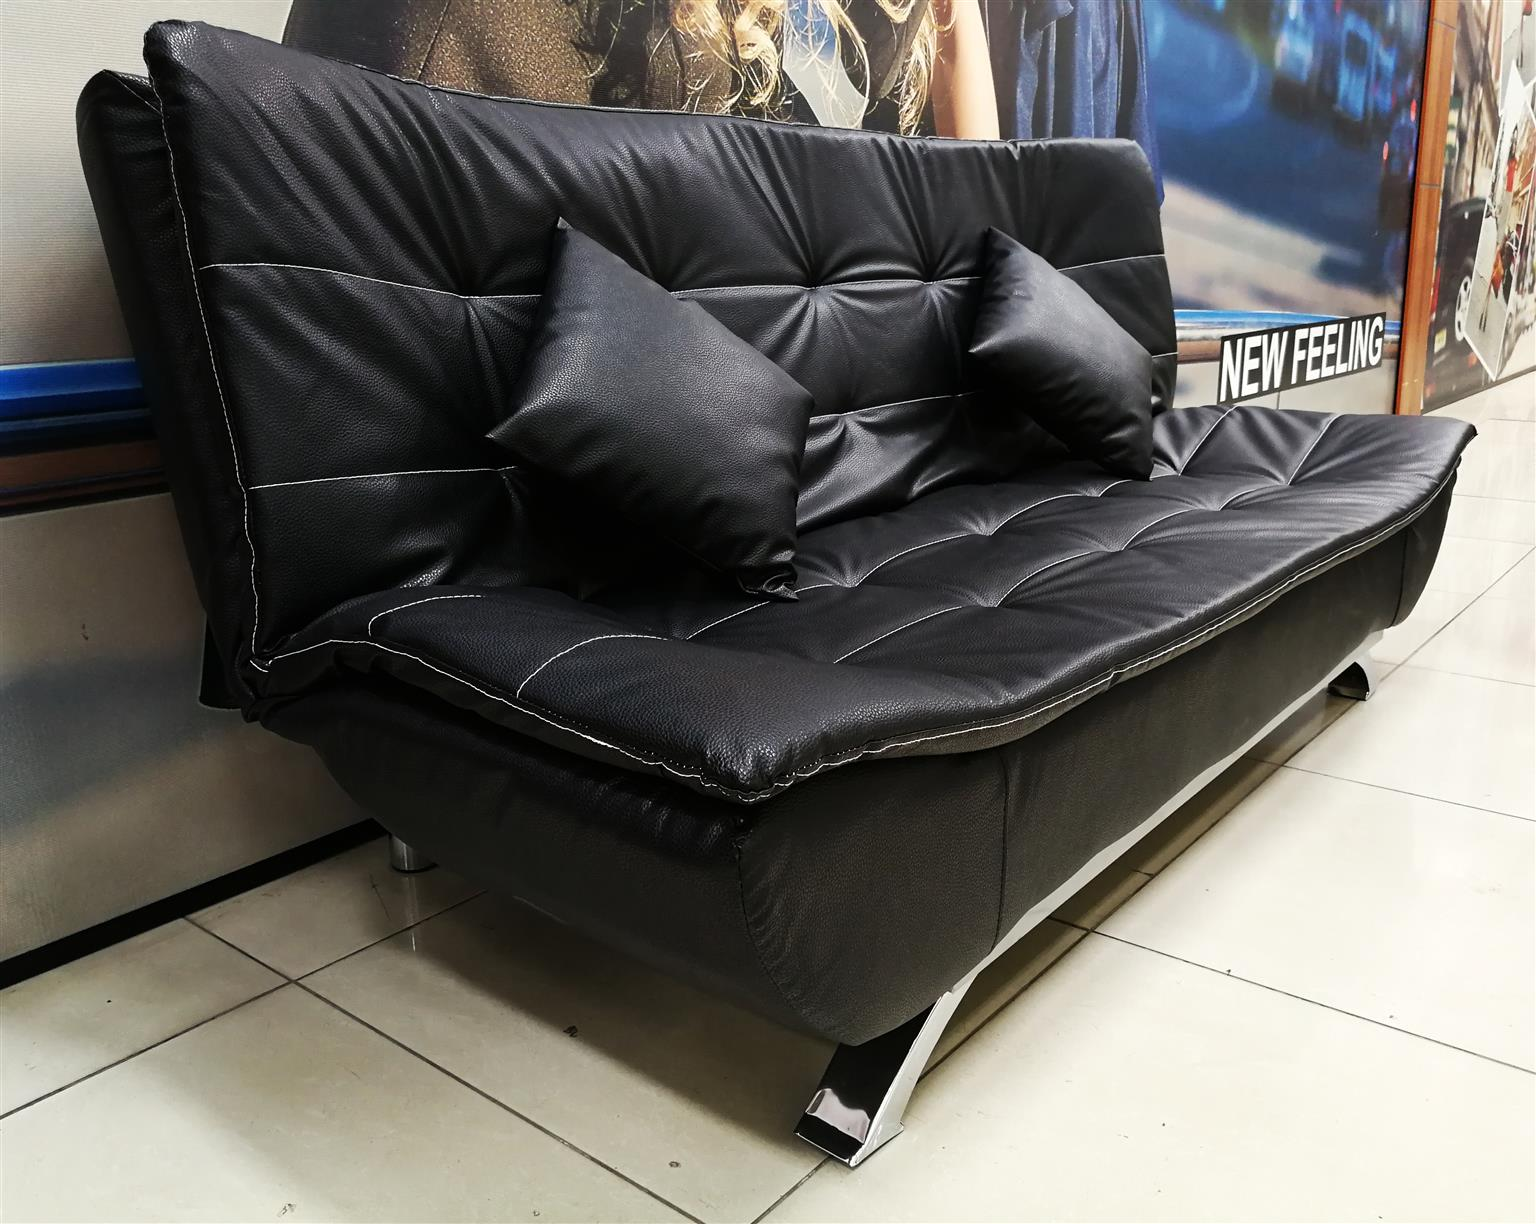 Brand New Sleeper Couches For Sale Junk Mail